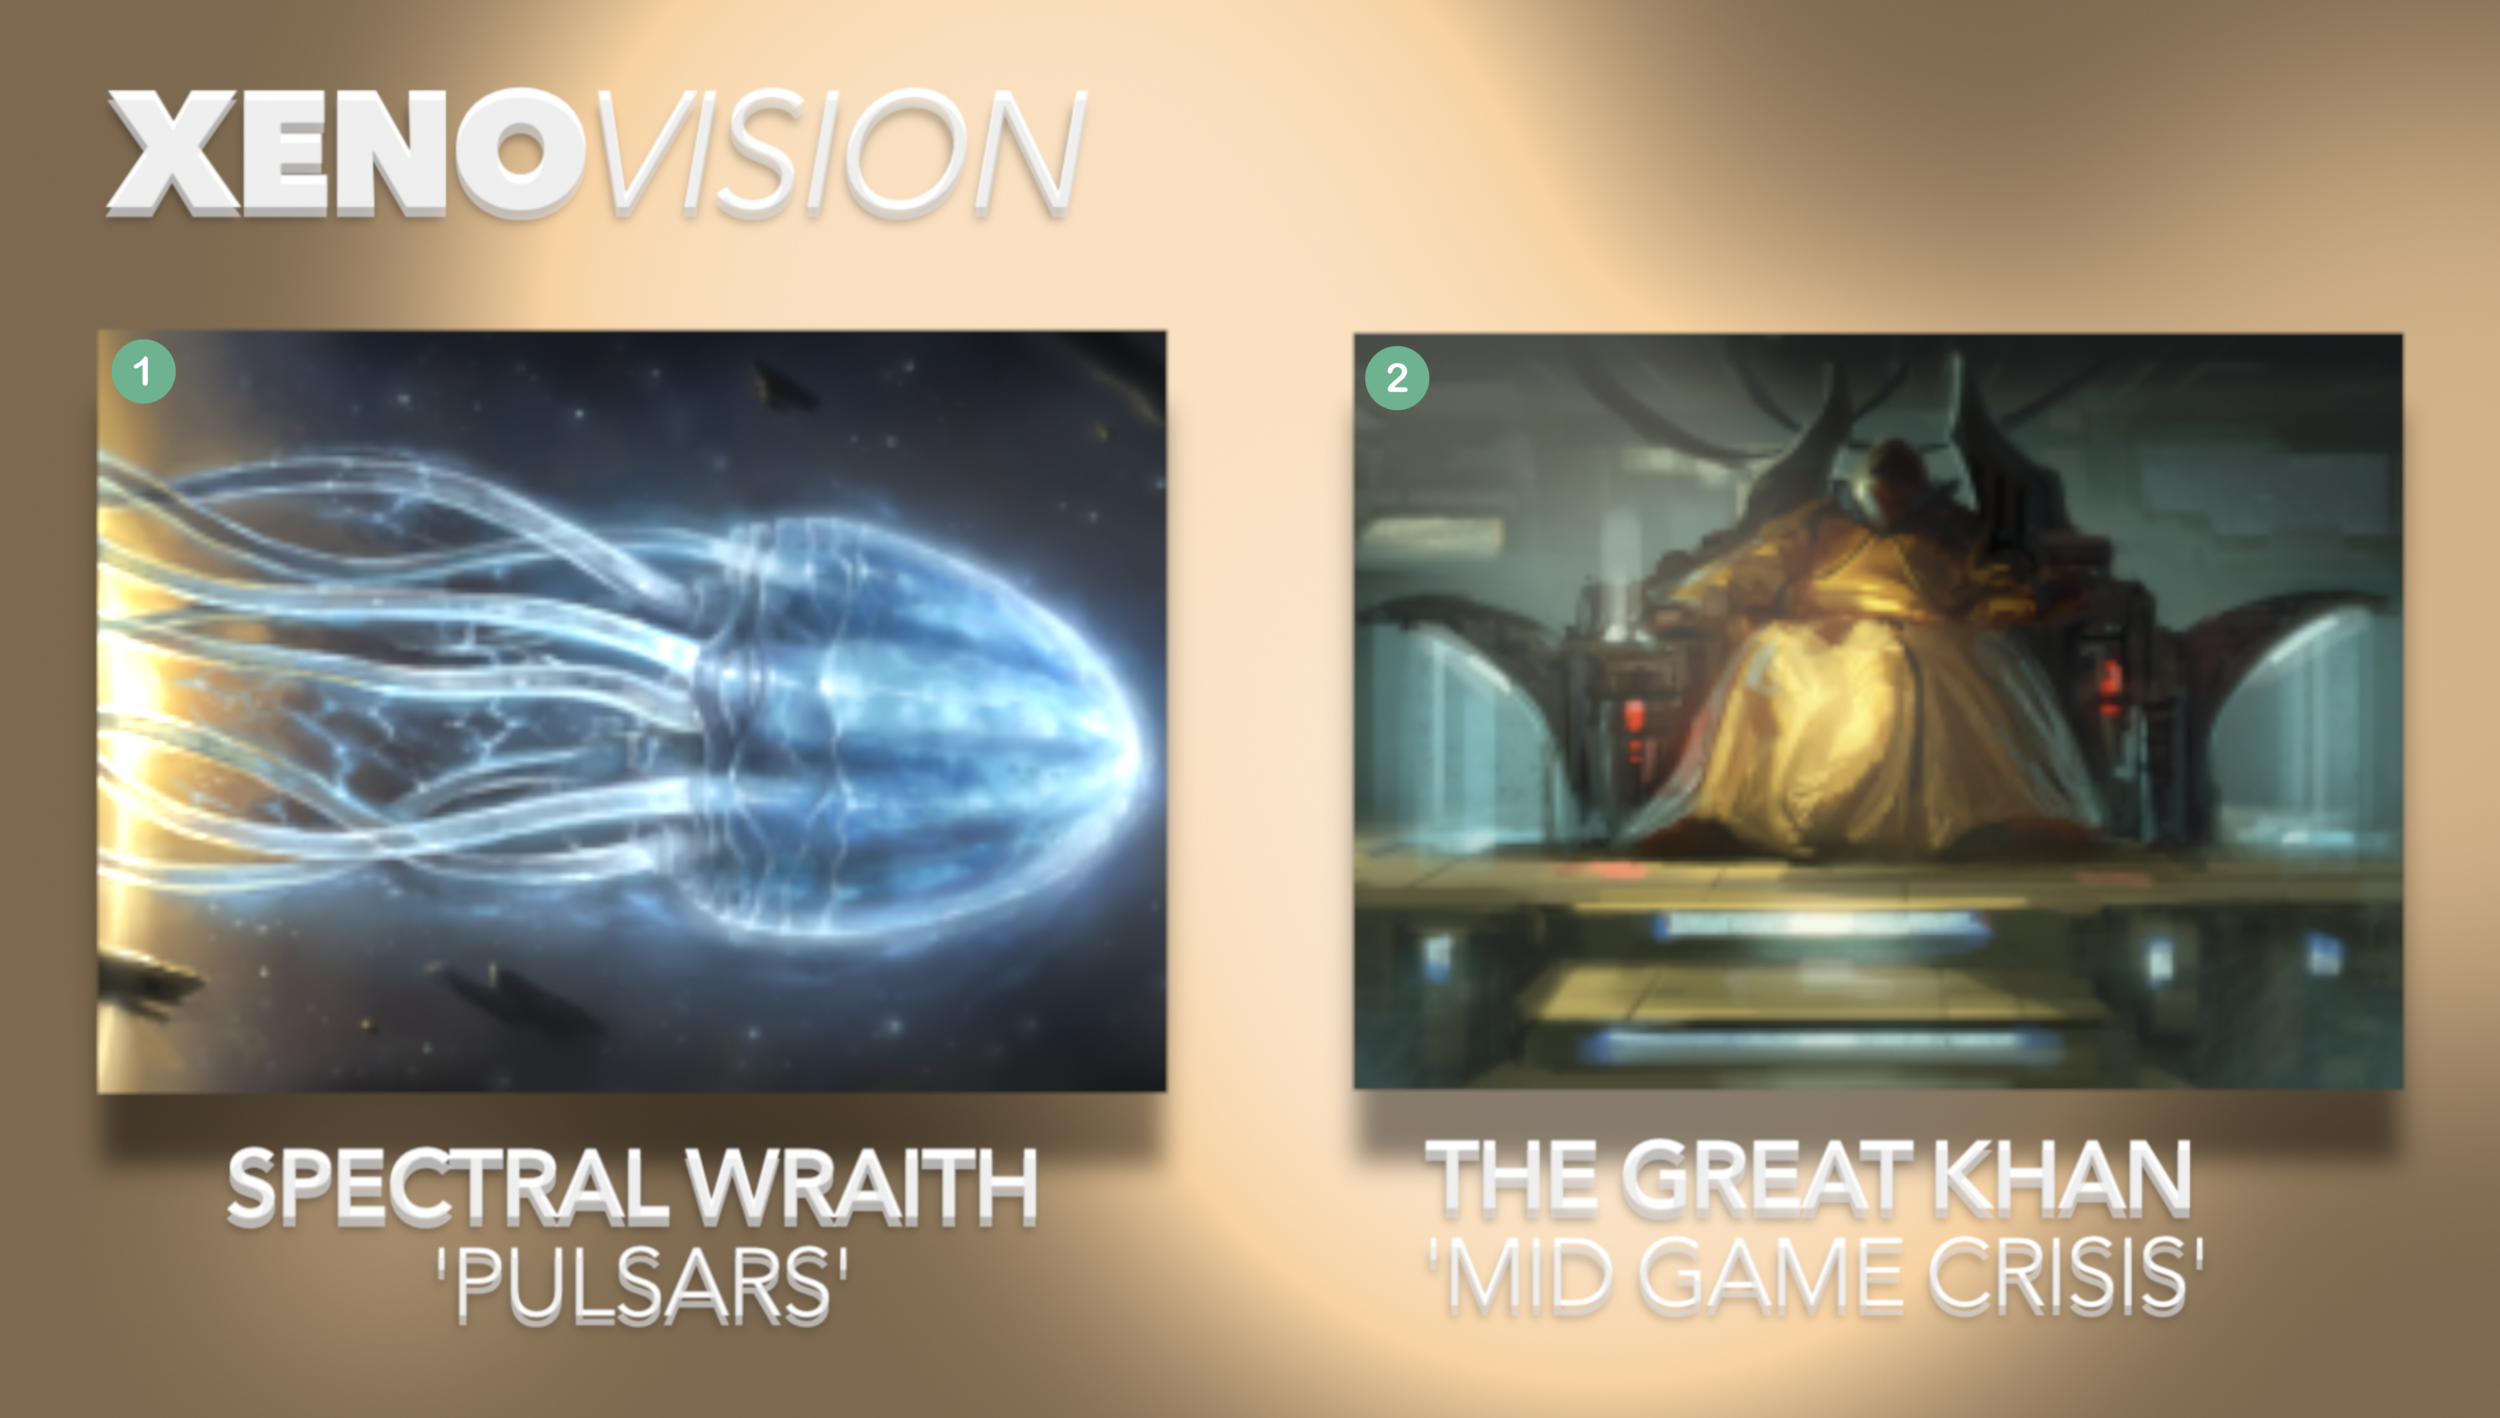 Image: The vote was extremely narrow between the top two entrants at this year's Xenovision.